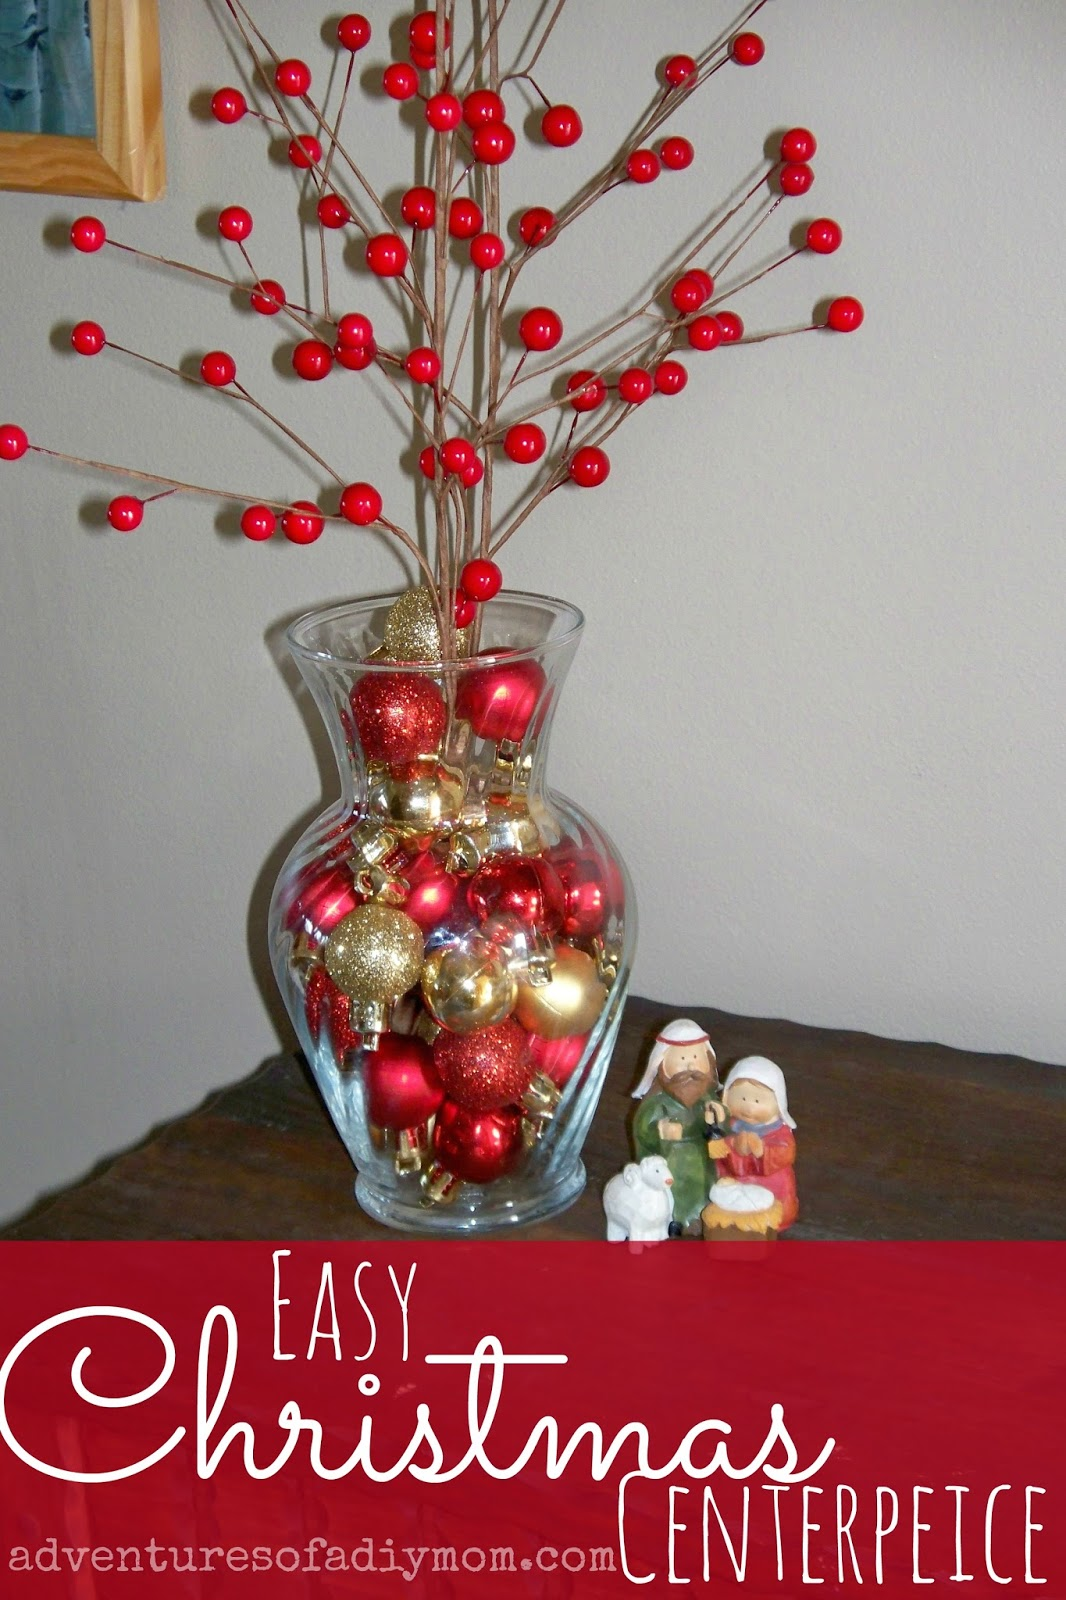 Best easy christmas centerpiece artofdomaining